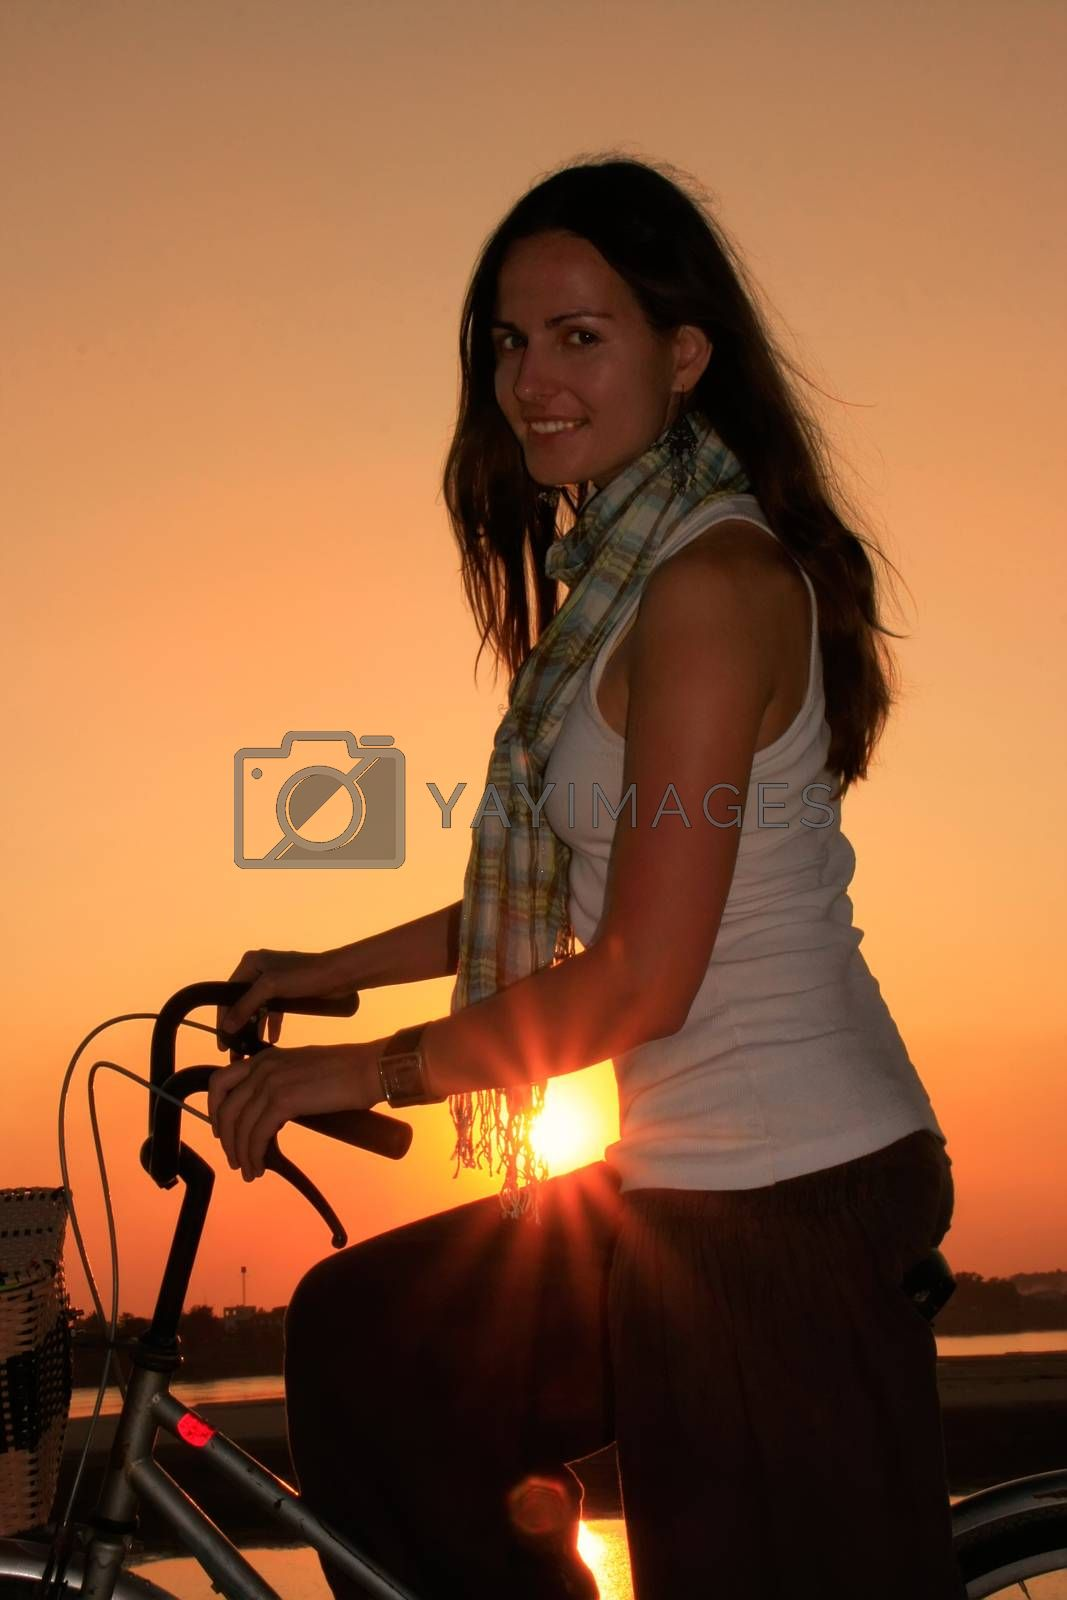 Royalty free image of Silhouetted woman with bicycle at Mekong river waterfront at sun by donya_nedomam